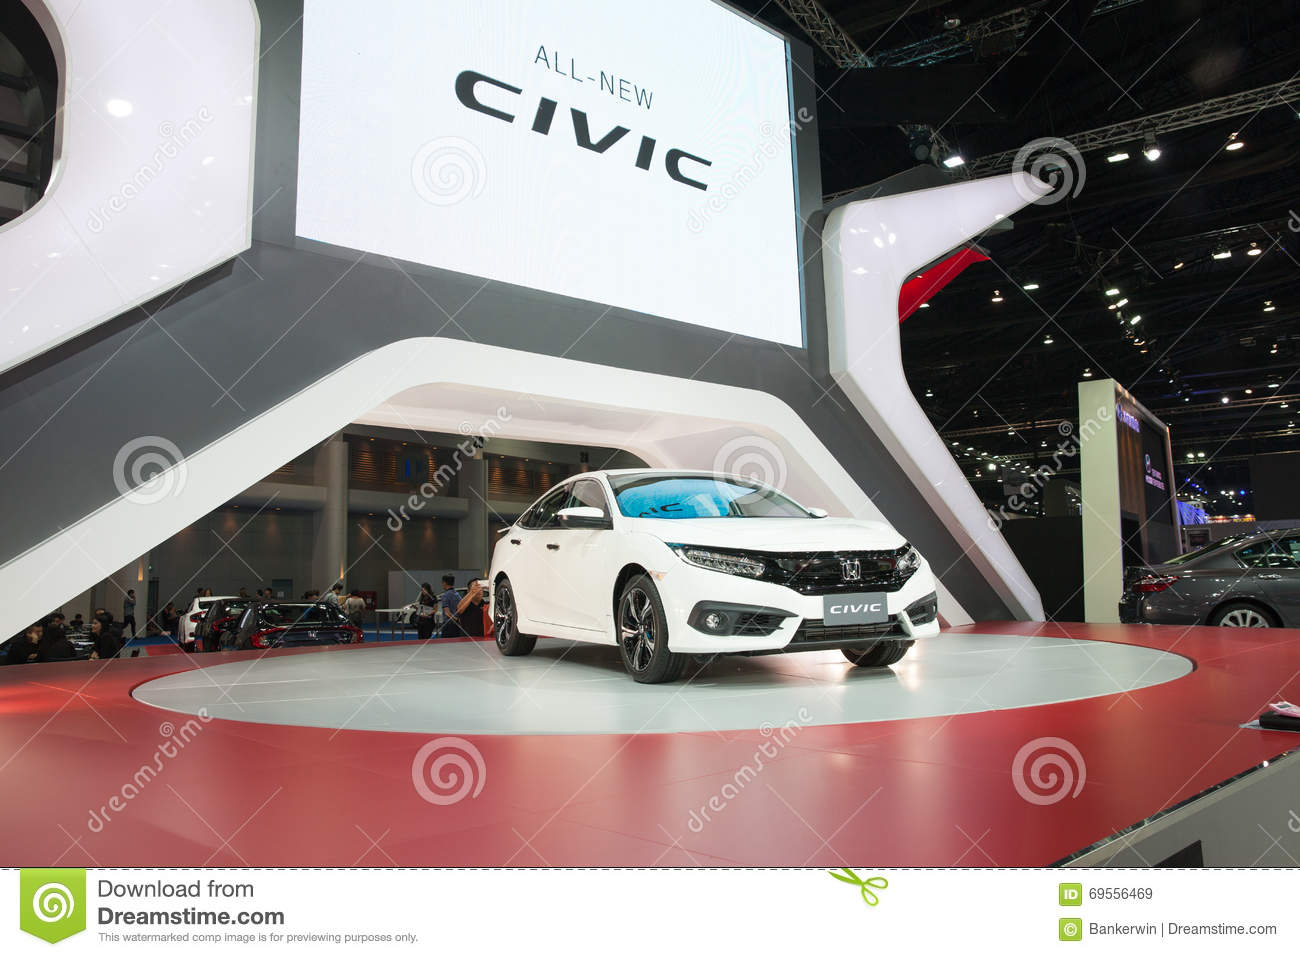 Honda Civic Wtcc Car Monza in addition Race Track Icon Flat Style additionally Cars furthermore Viewposts additionally Porsche 911 Gt3 Cup Type 996 Monza. on race car circuit cartoons